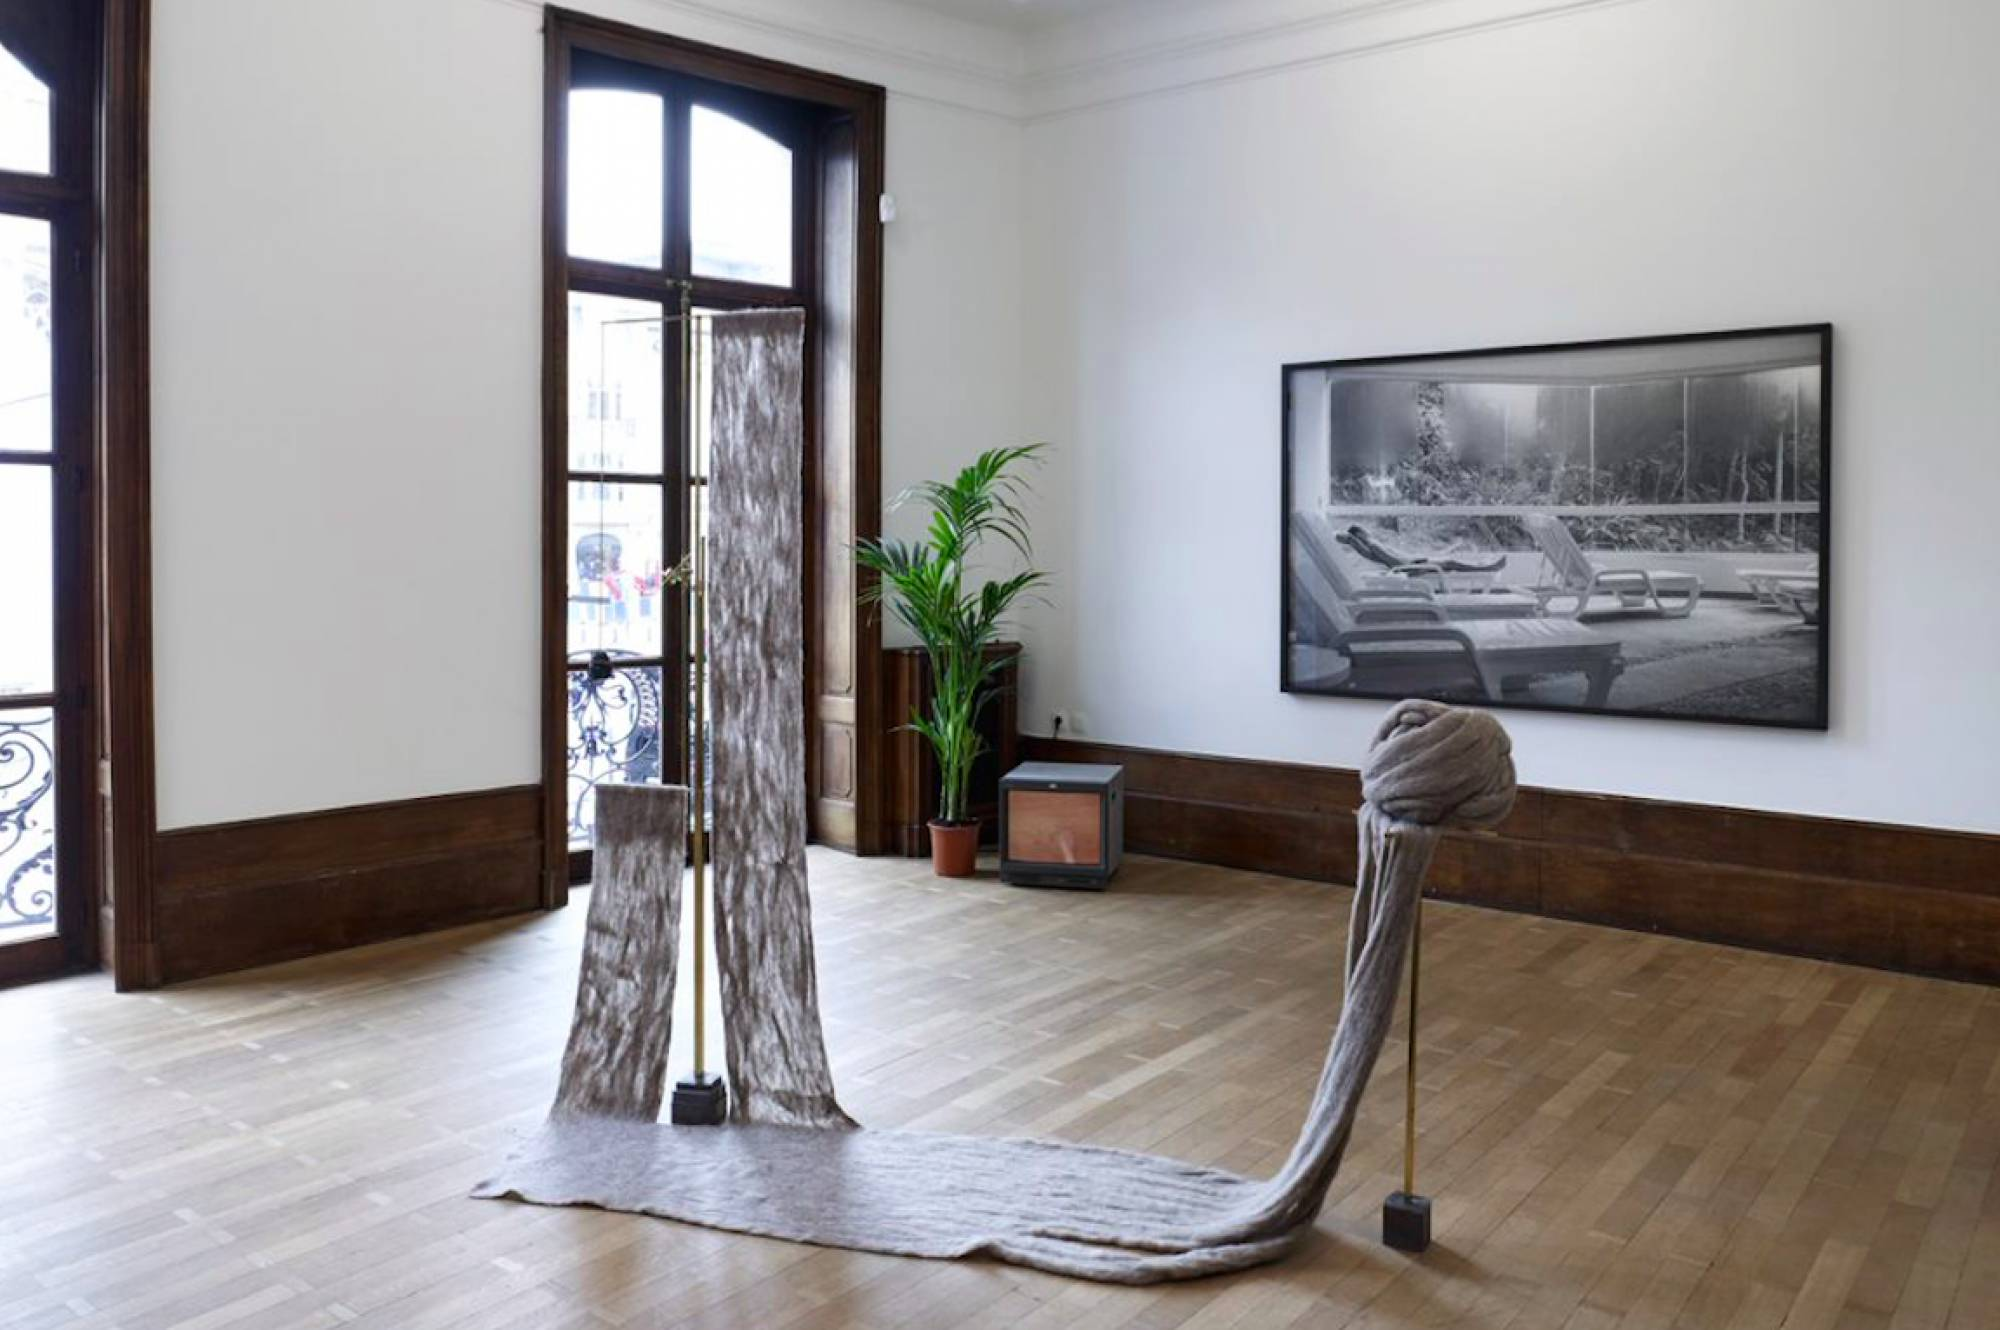 <em>Neither.</em>, Mendes Wood DM Bruxelas, 2017 - Mendes Wood DM